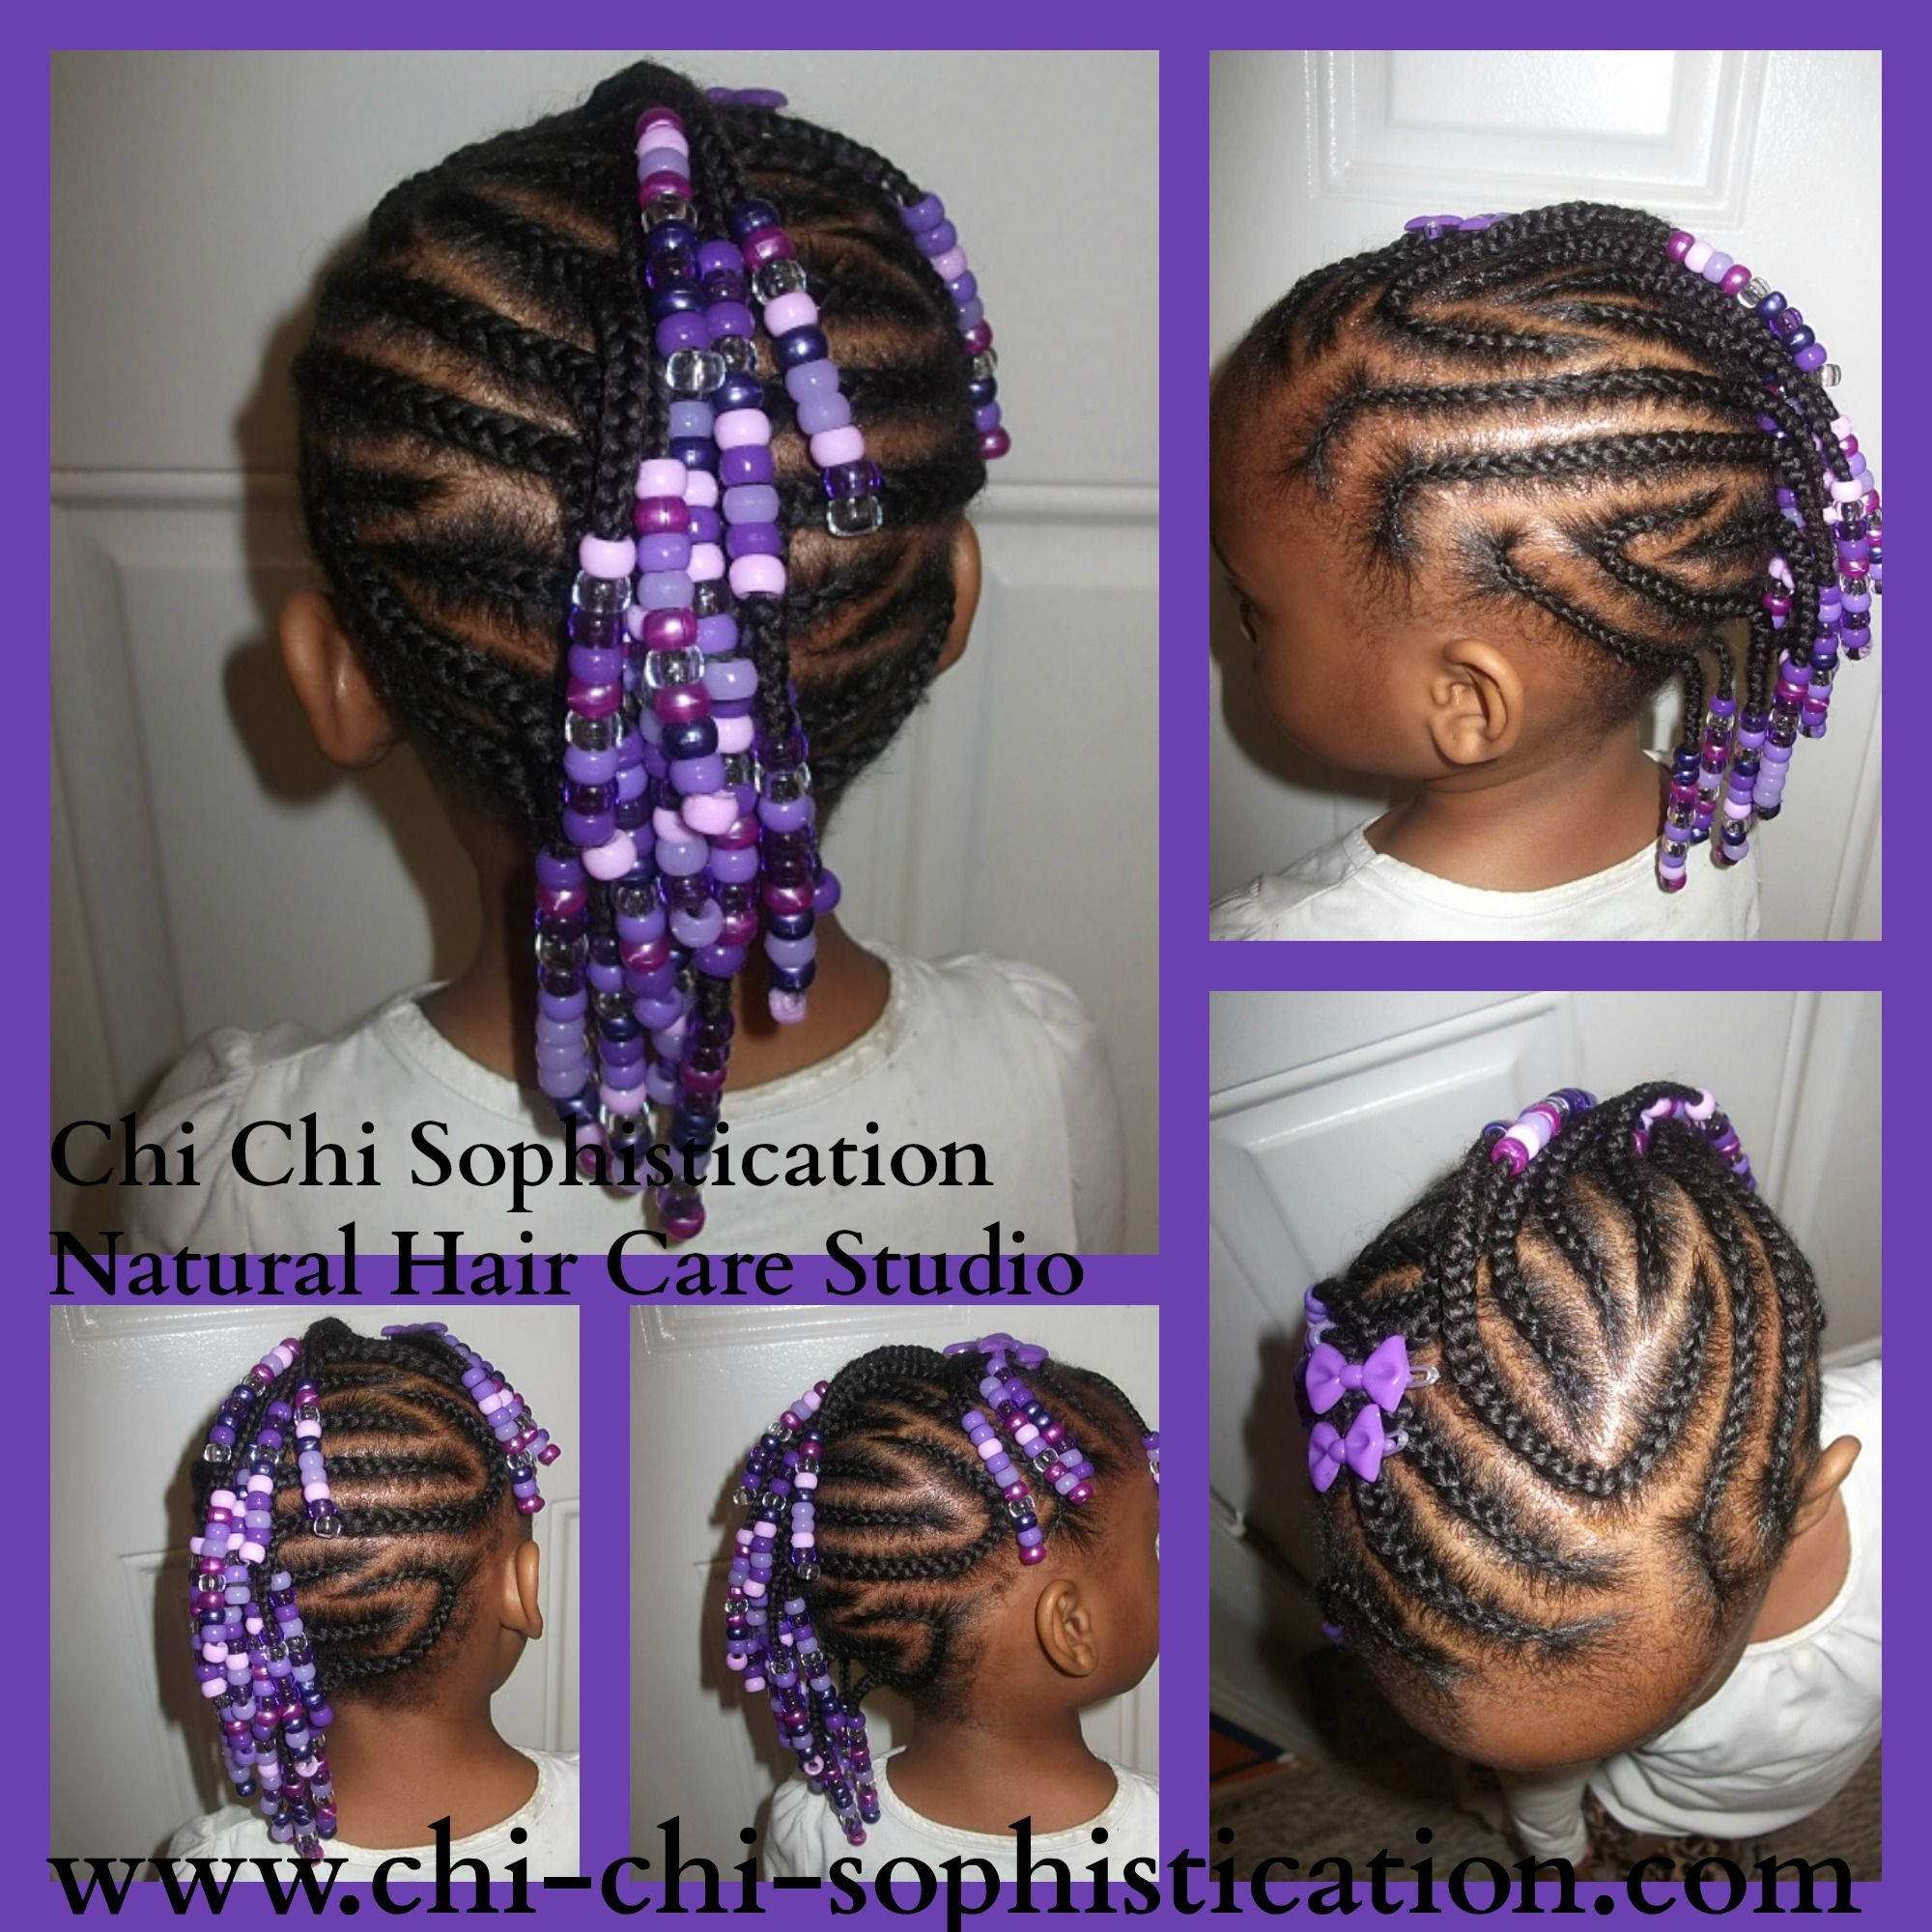 Cornrows Styled Into A Mohawk With Beads Little Girl Braids Hair Styles Braids For Kids